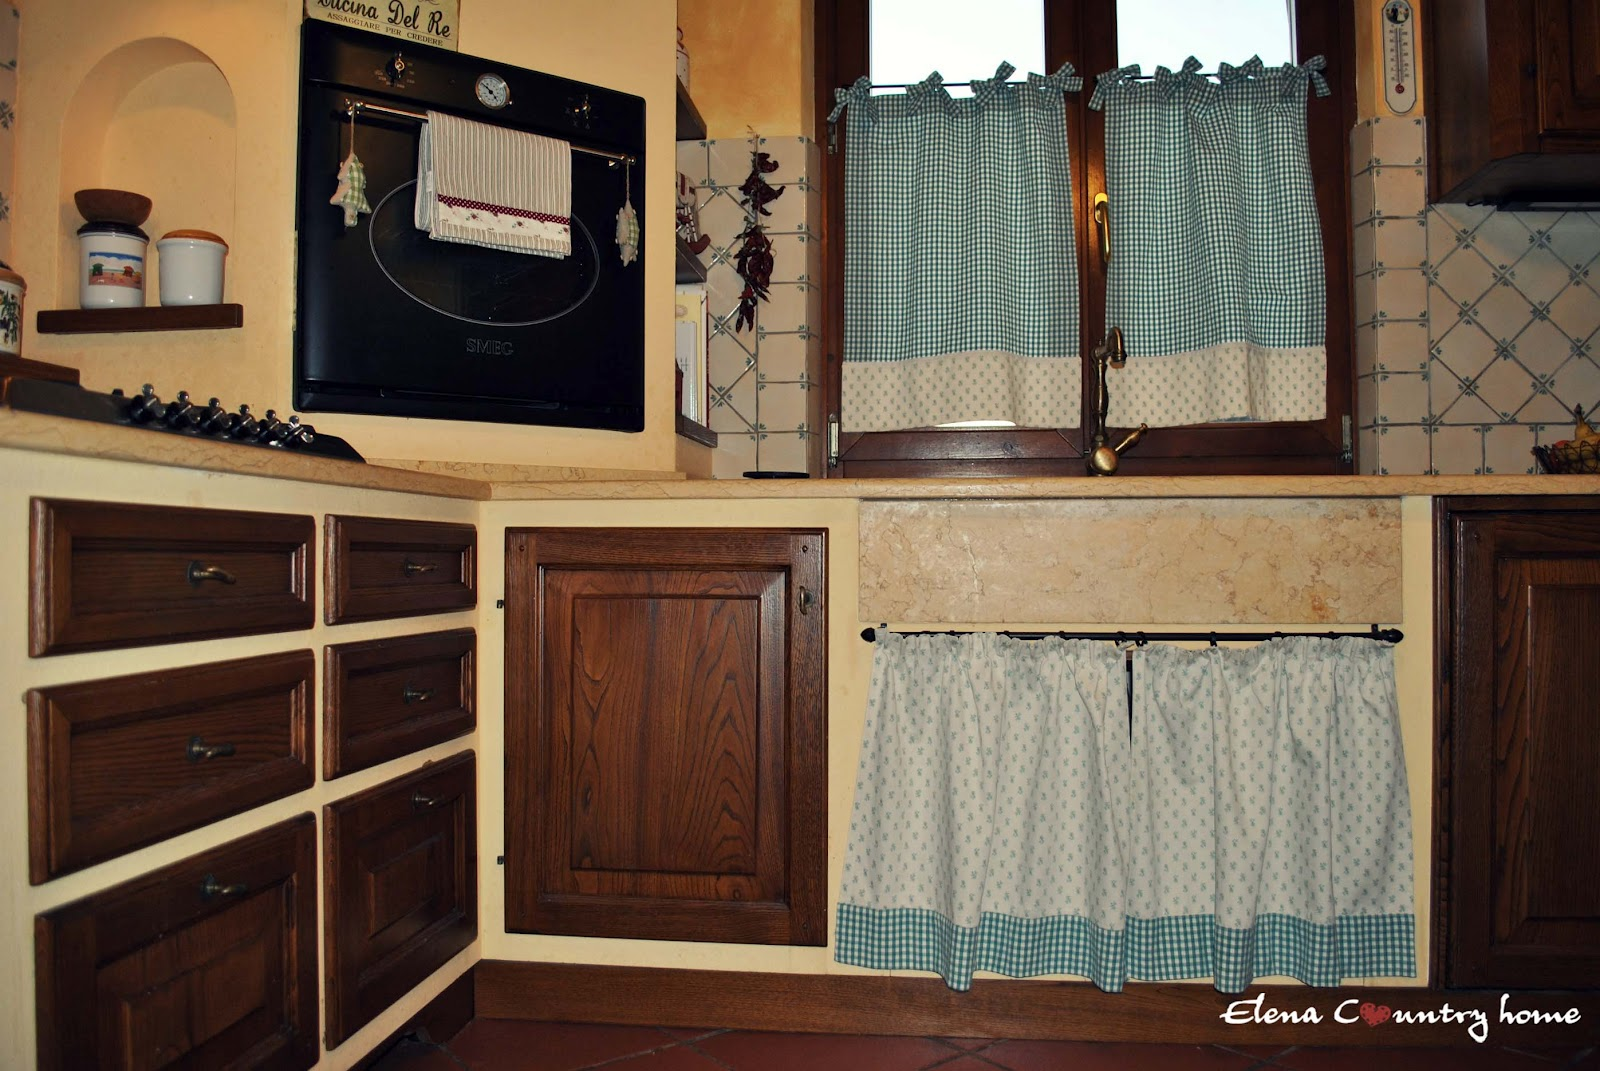 Elena country home la mia country cucina - Tendine per cucine in muratura ...